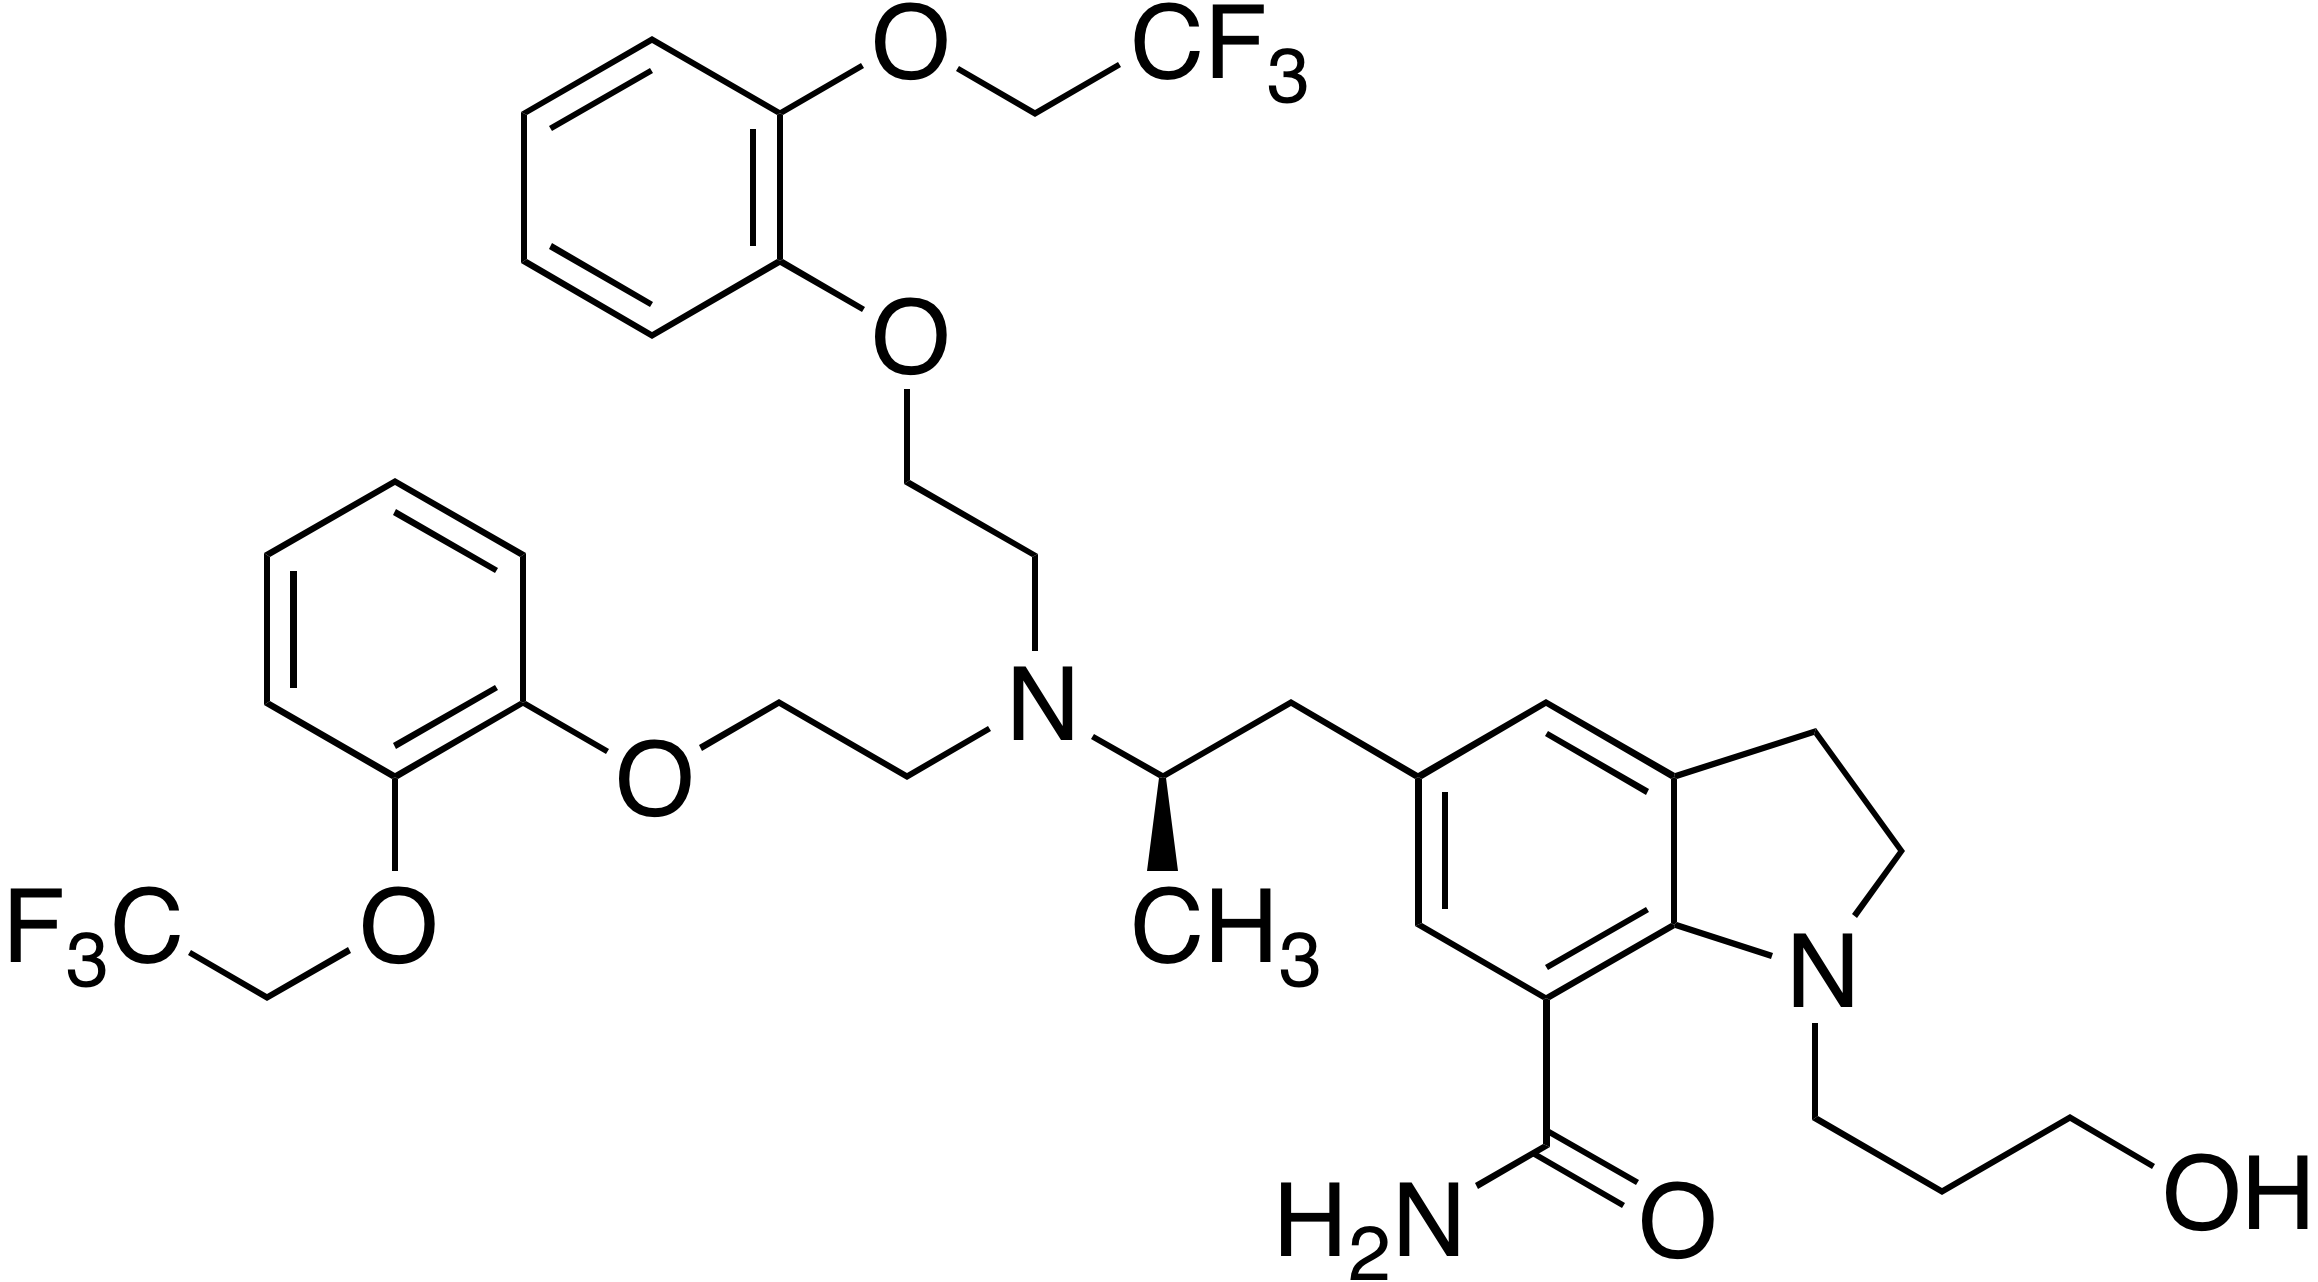 Silodosin impurity 3 (Dimer impurity)